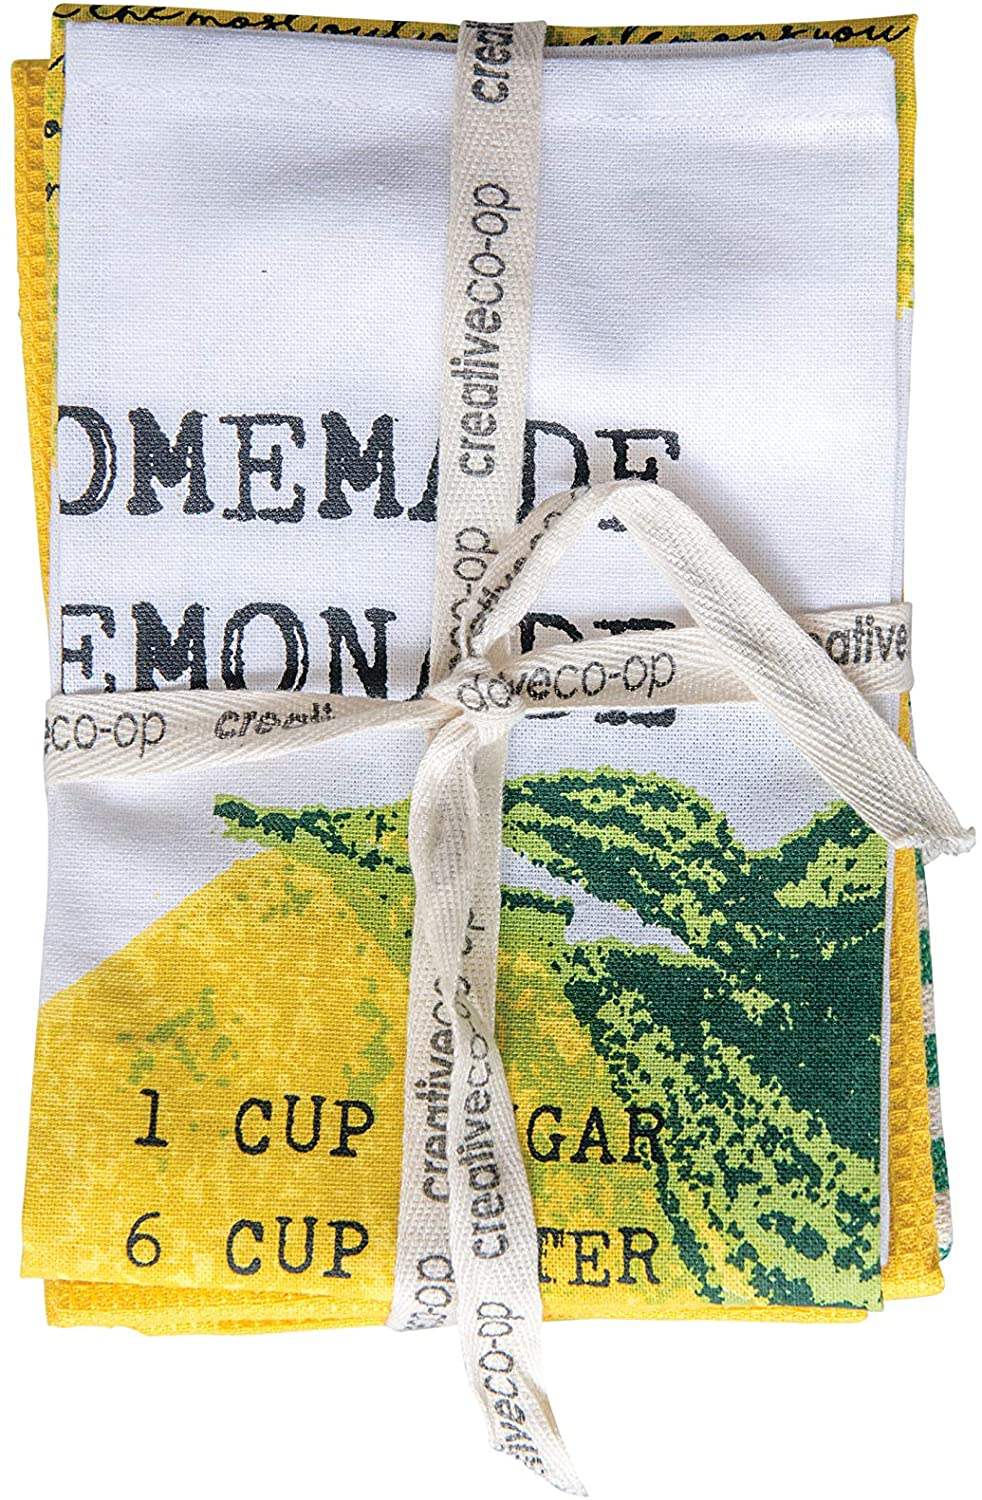 Lemonade Cotton Tea towels